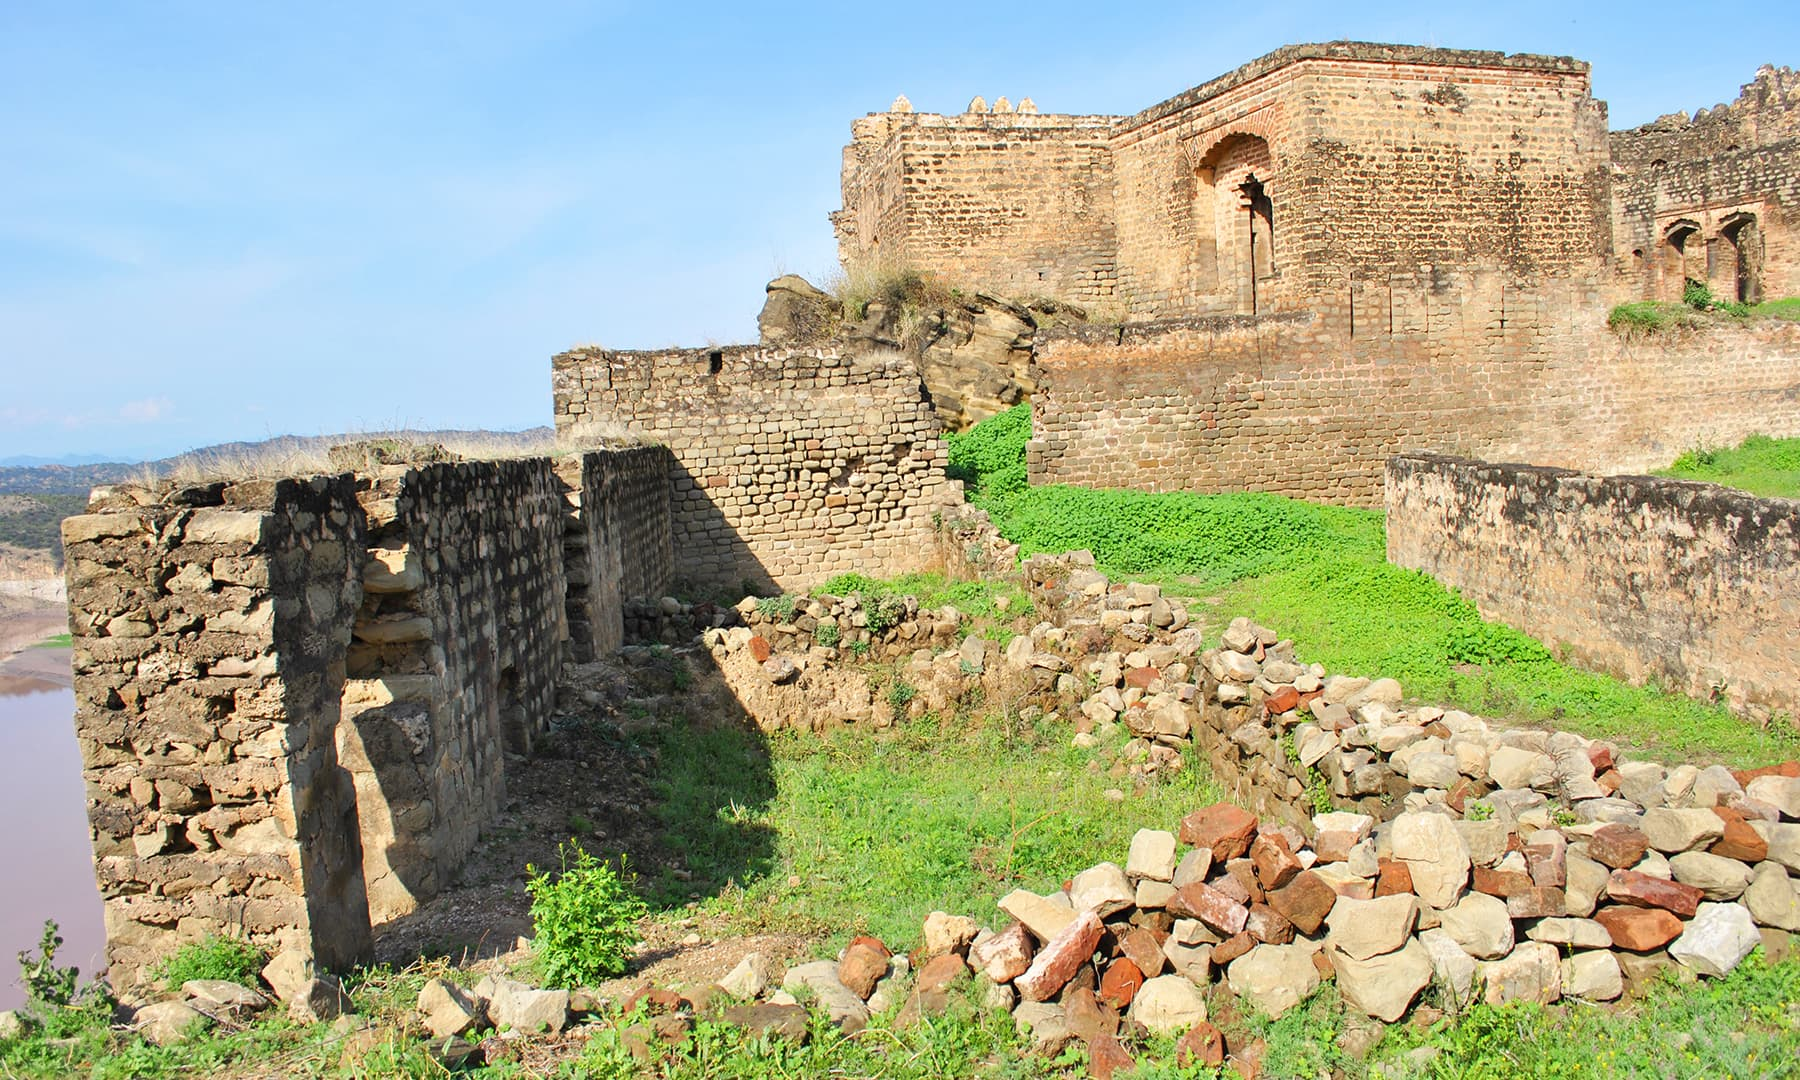 Dr Anis ur Rehman, who later devoted his effort for the restoration work of this fort, says the day he entered the fort for the first time, in the summer of 1999 it lay in complete ruin.